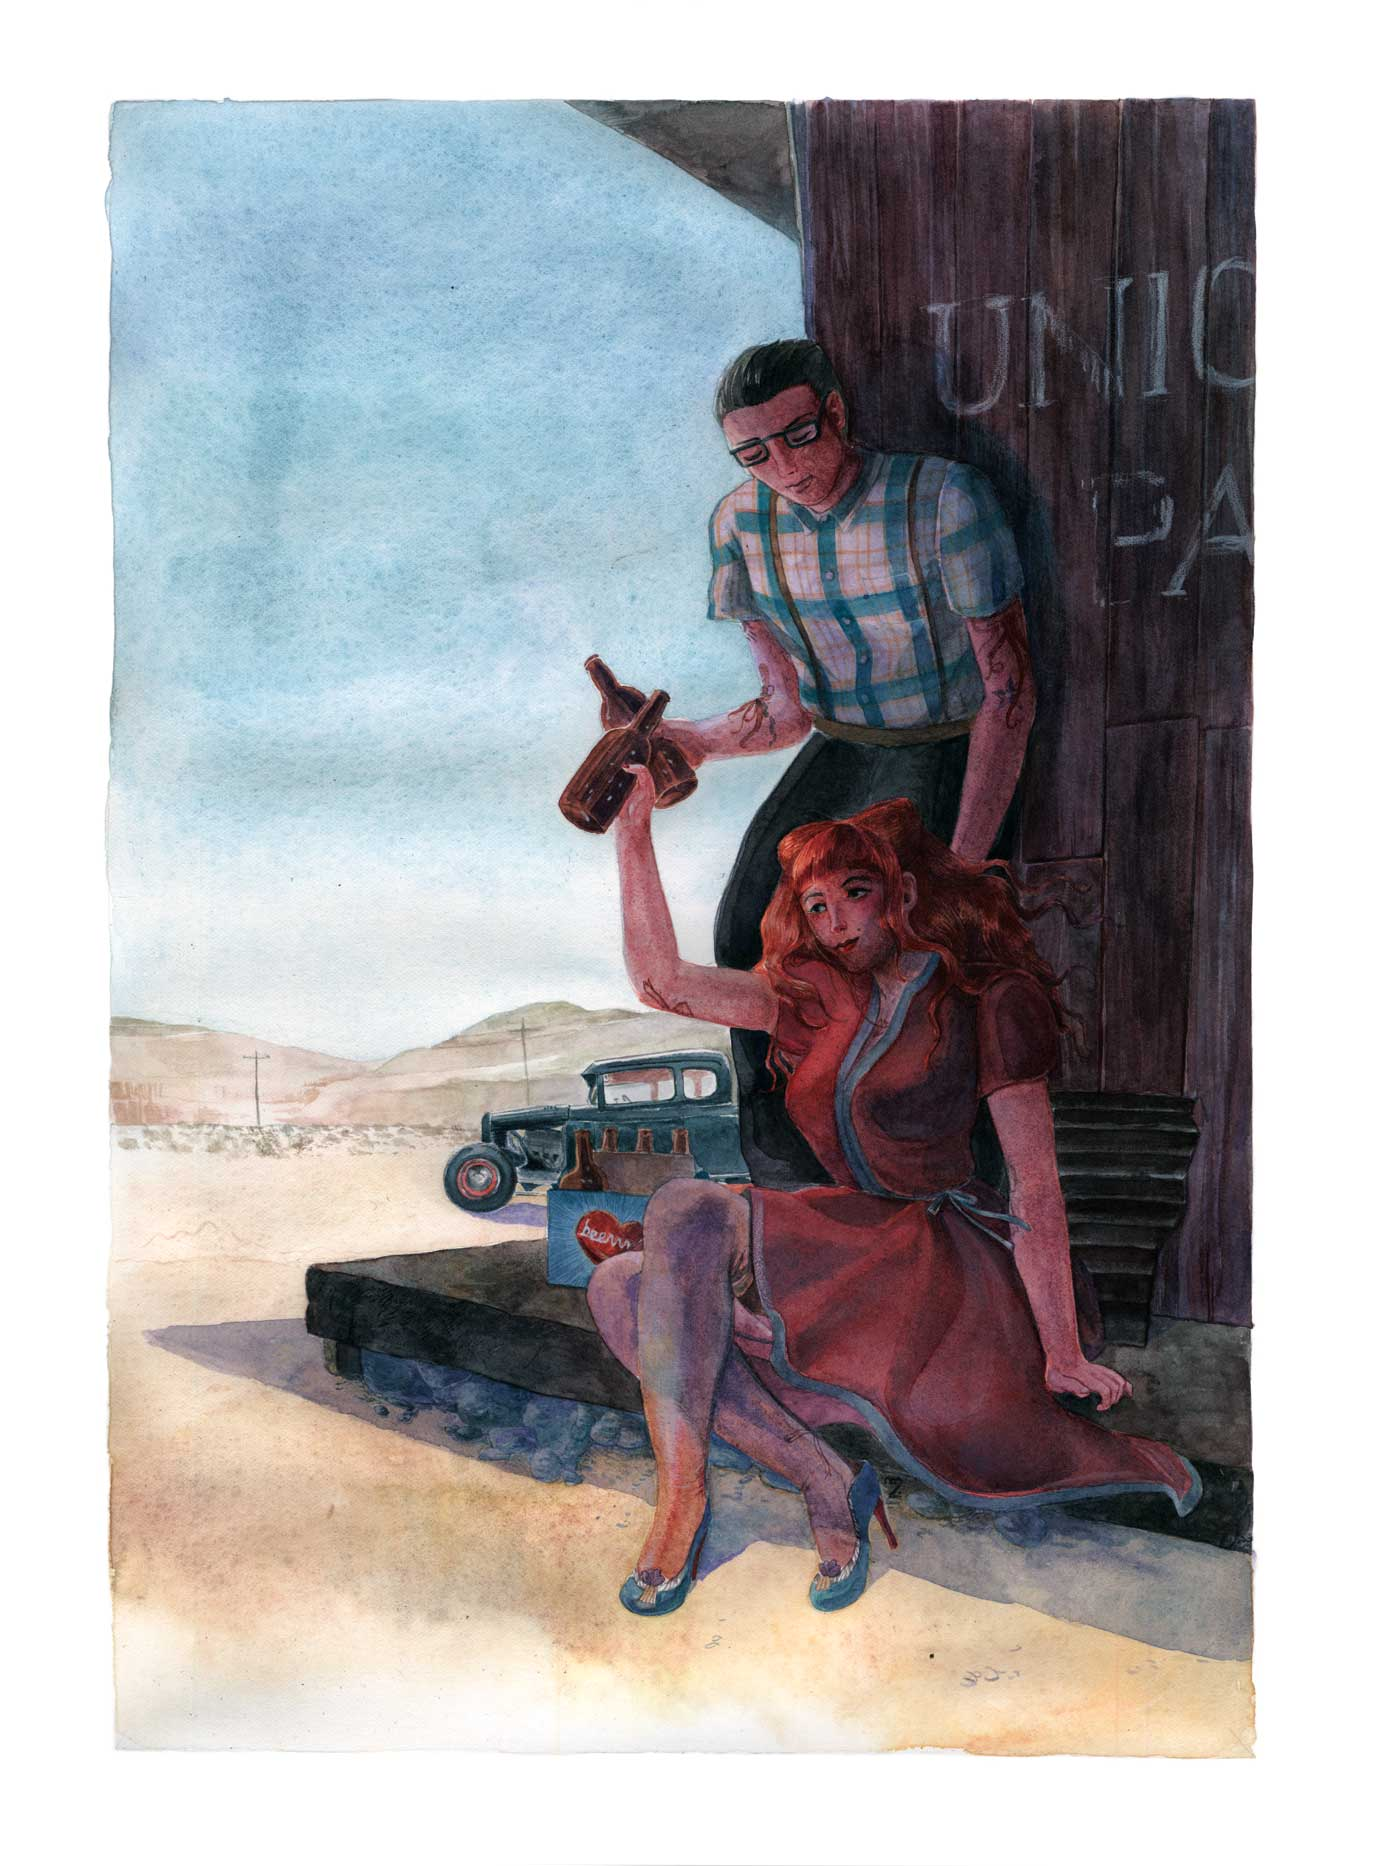 Fanart of Violette and Juan from comic book Burlesque Girrrl are sharing a beer on their musical tour in the US, here stopping in the middle of nowhere in the Death Valley, Nevada.